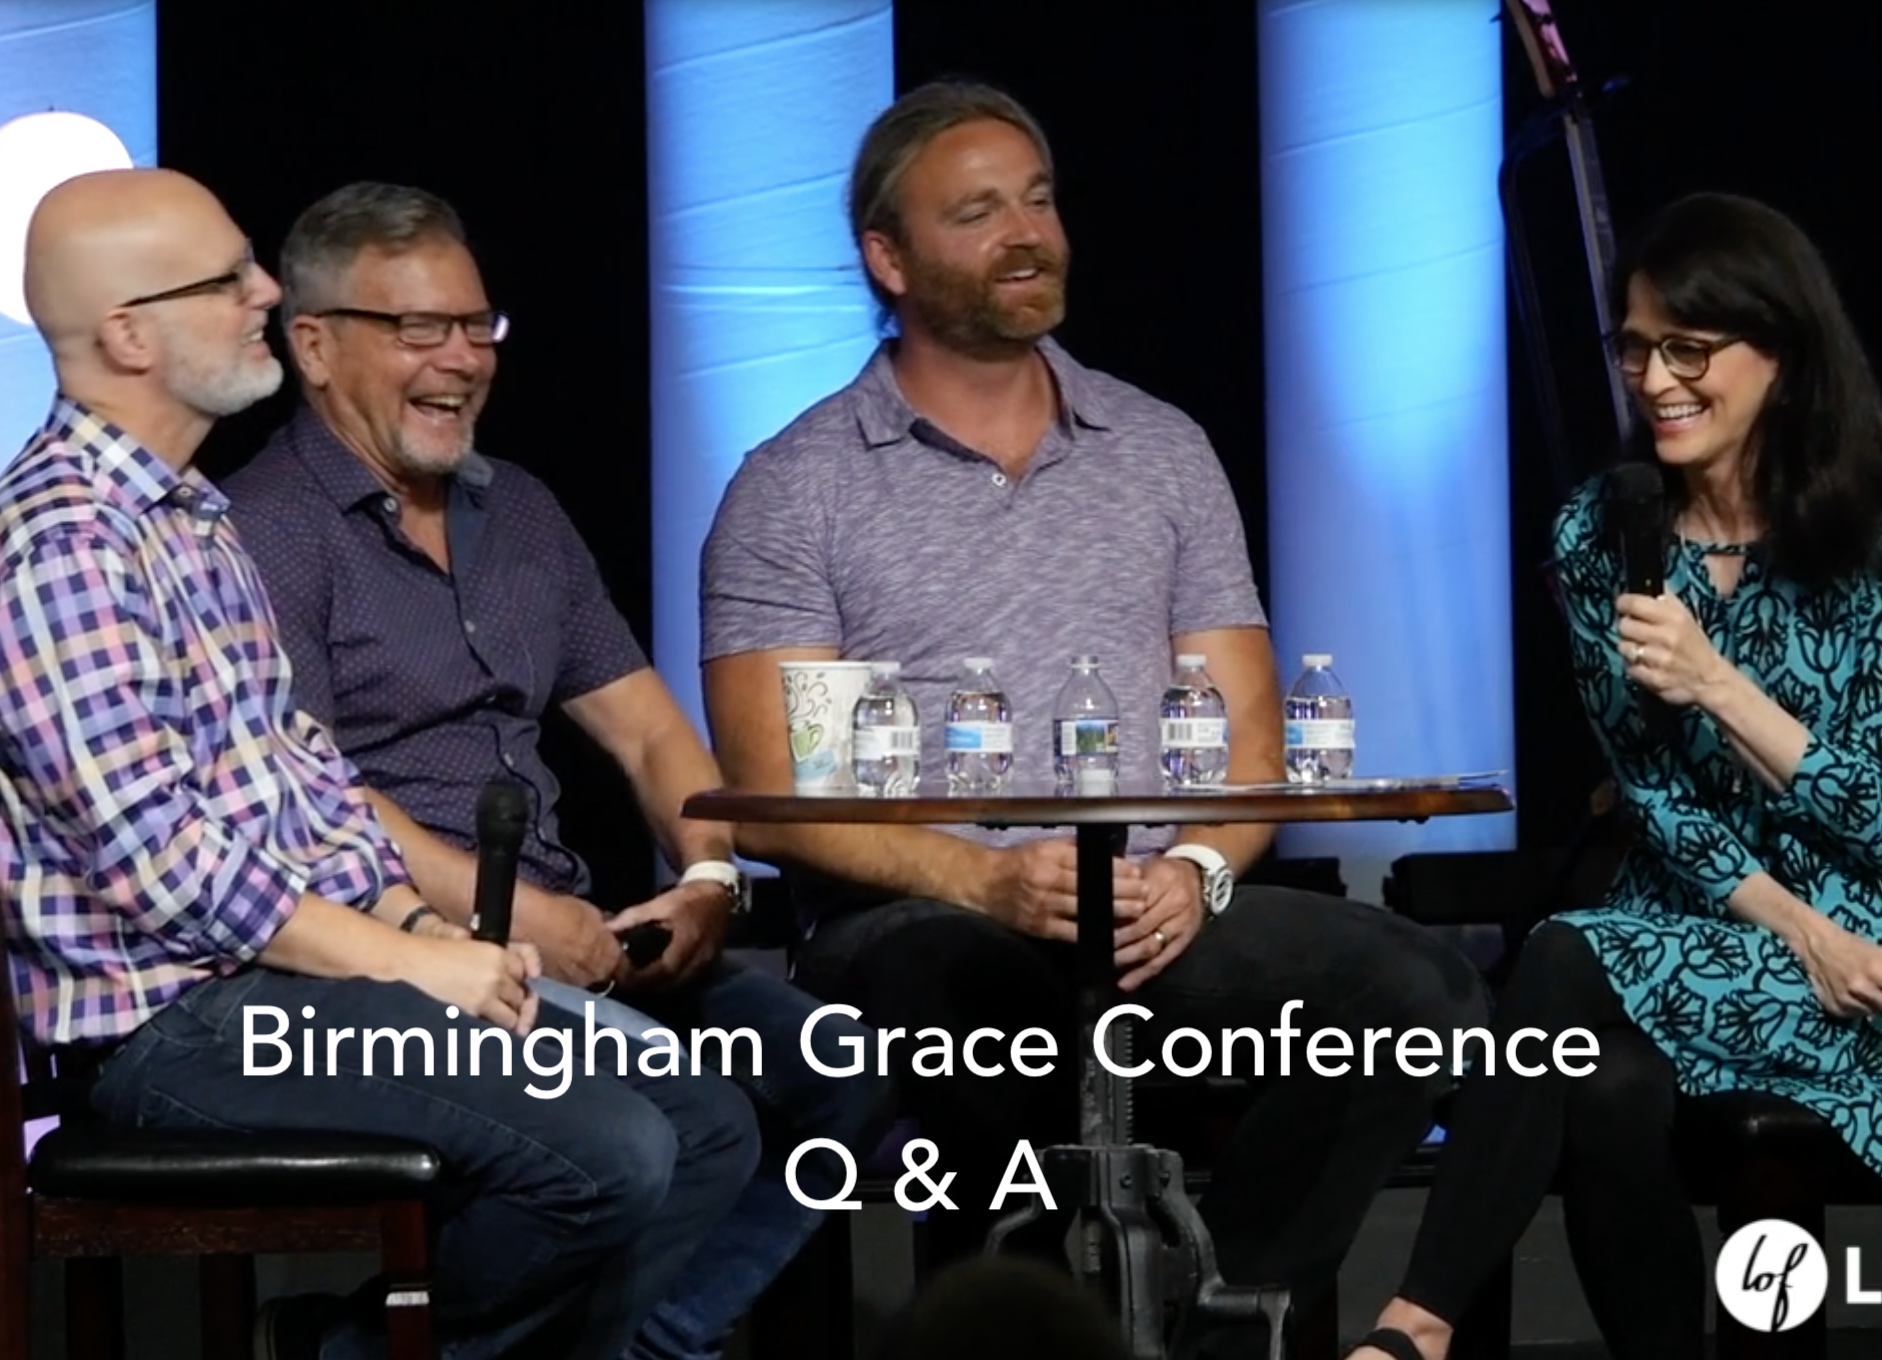 Tricia Gunn  ,   Jeremiah Johnson  ,   Rob Rufus  , and   Mark Machen   answer questions about God's grace at the Birmingham Grace Conference, 2018. Watch  here .